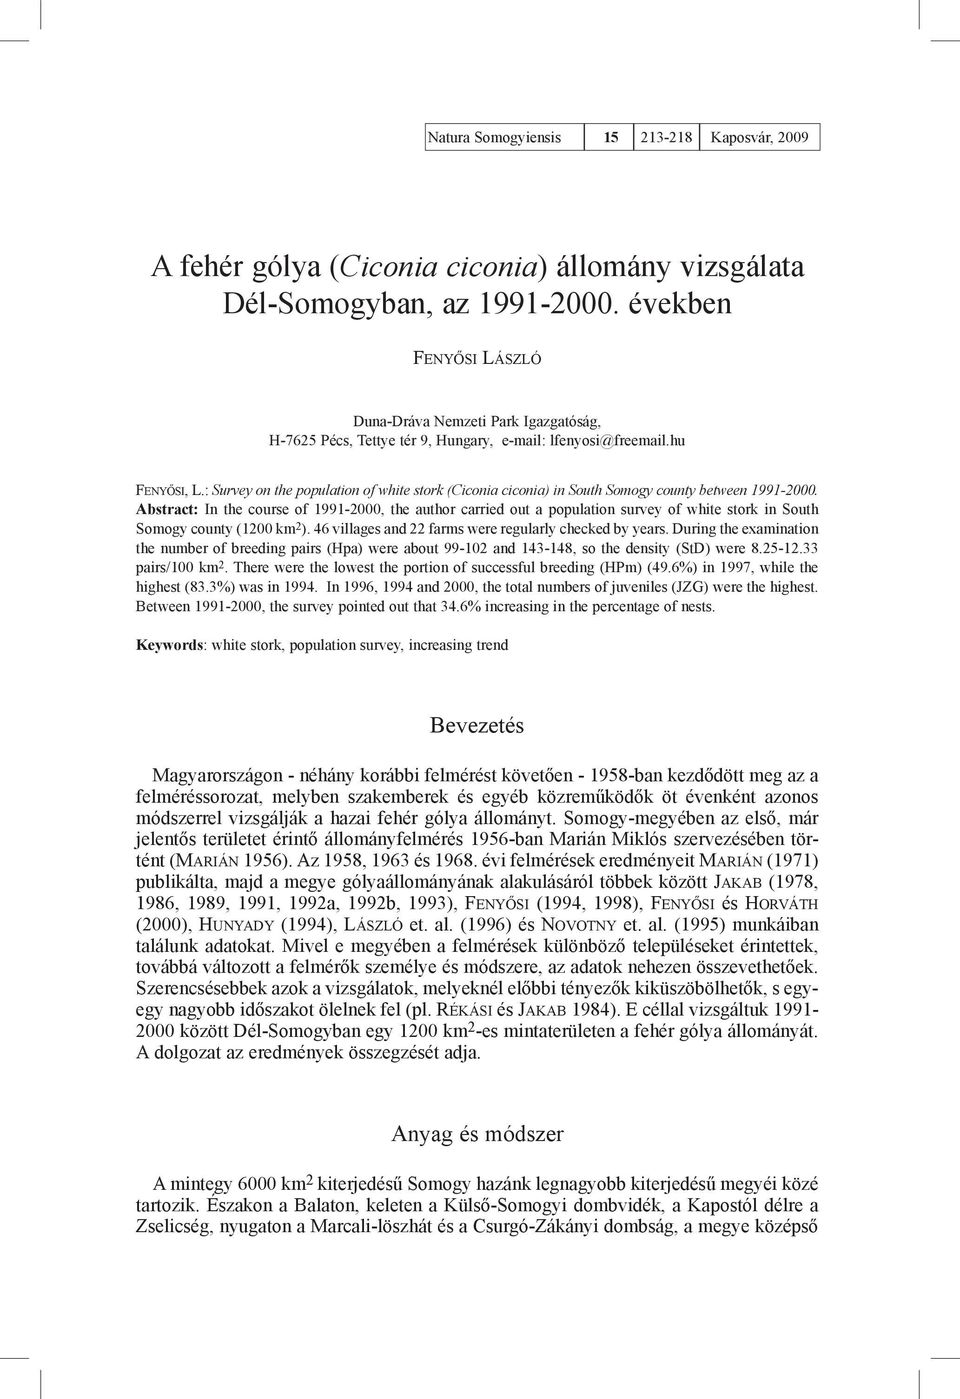 : Survey on the population of white stork (Ciconia ciconia) in South Somogy county between 1991-2000.